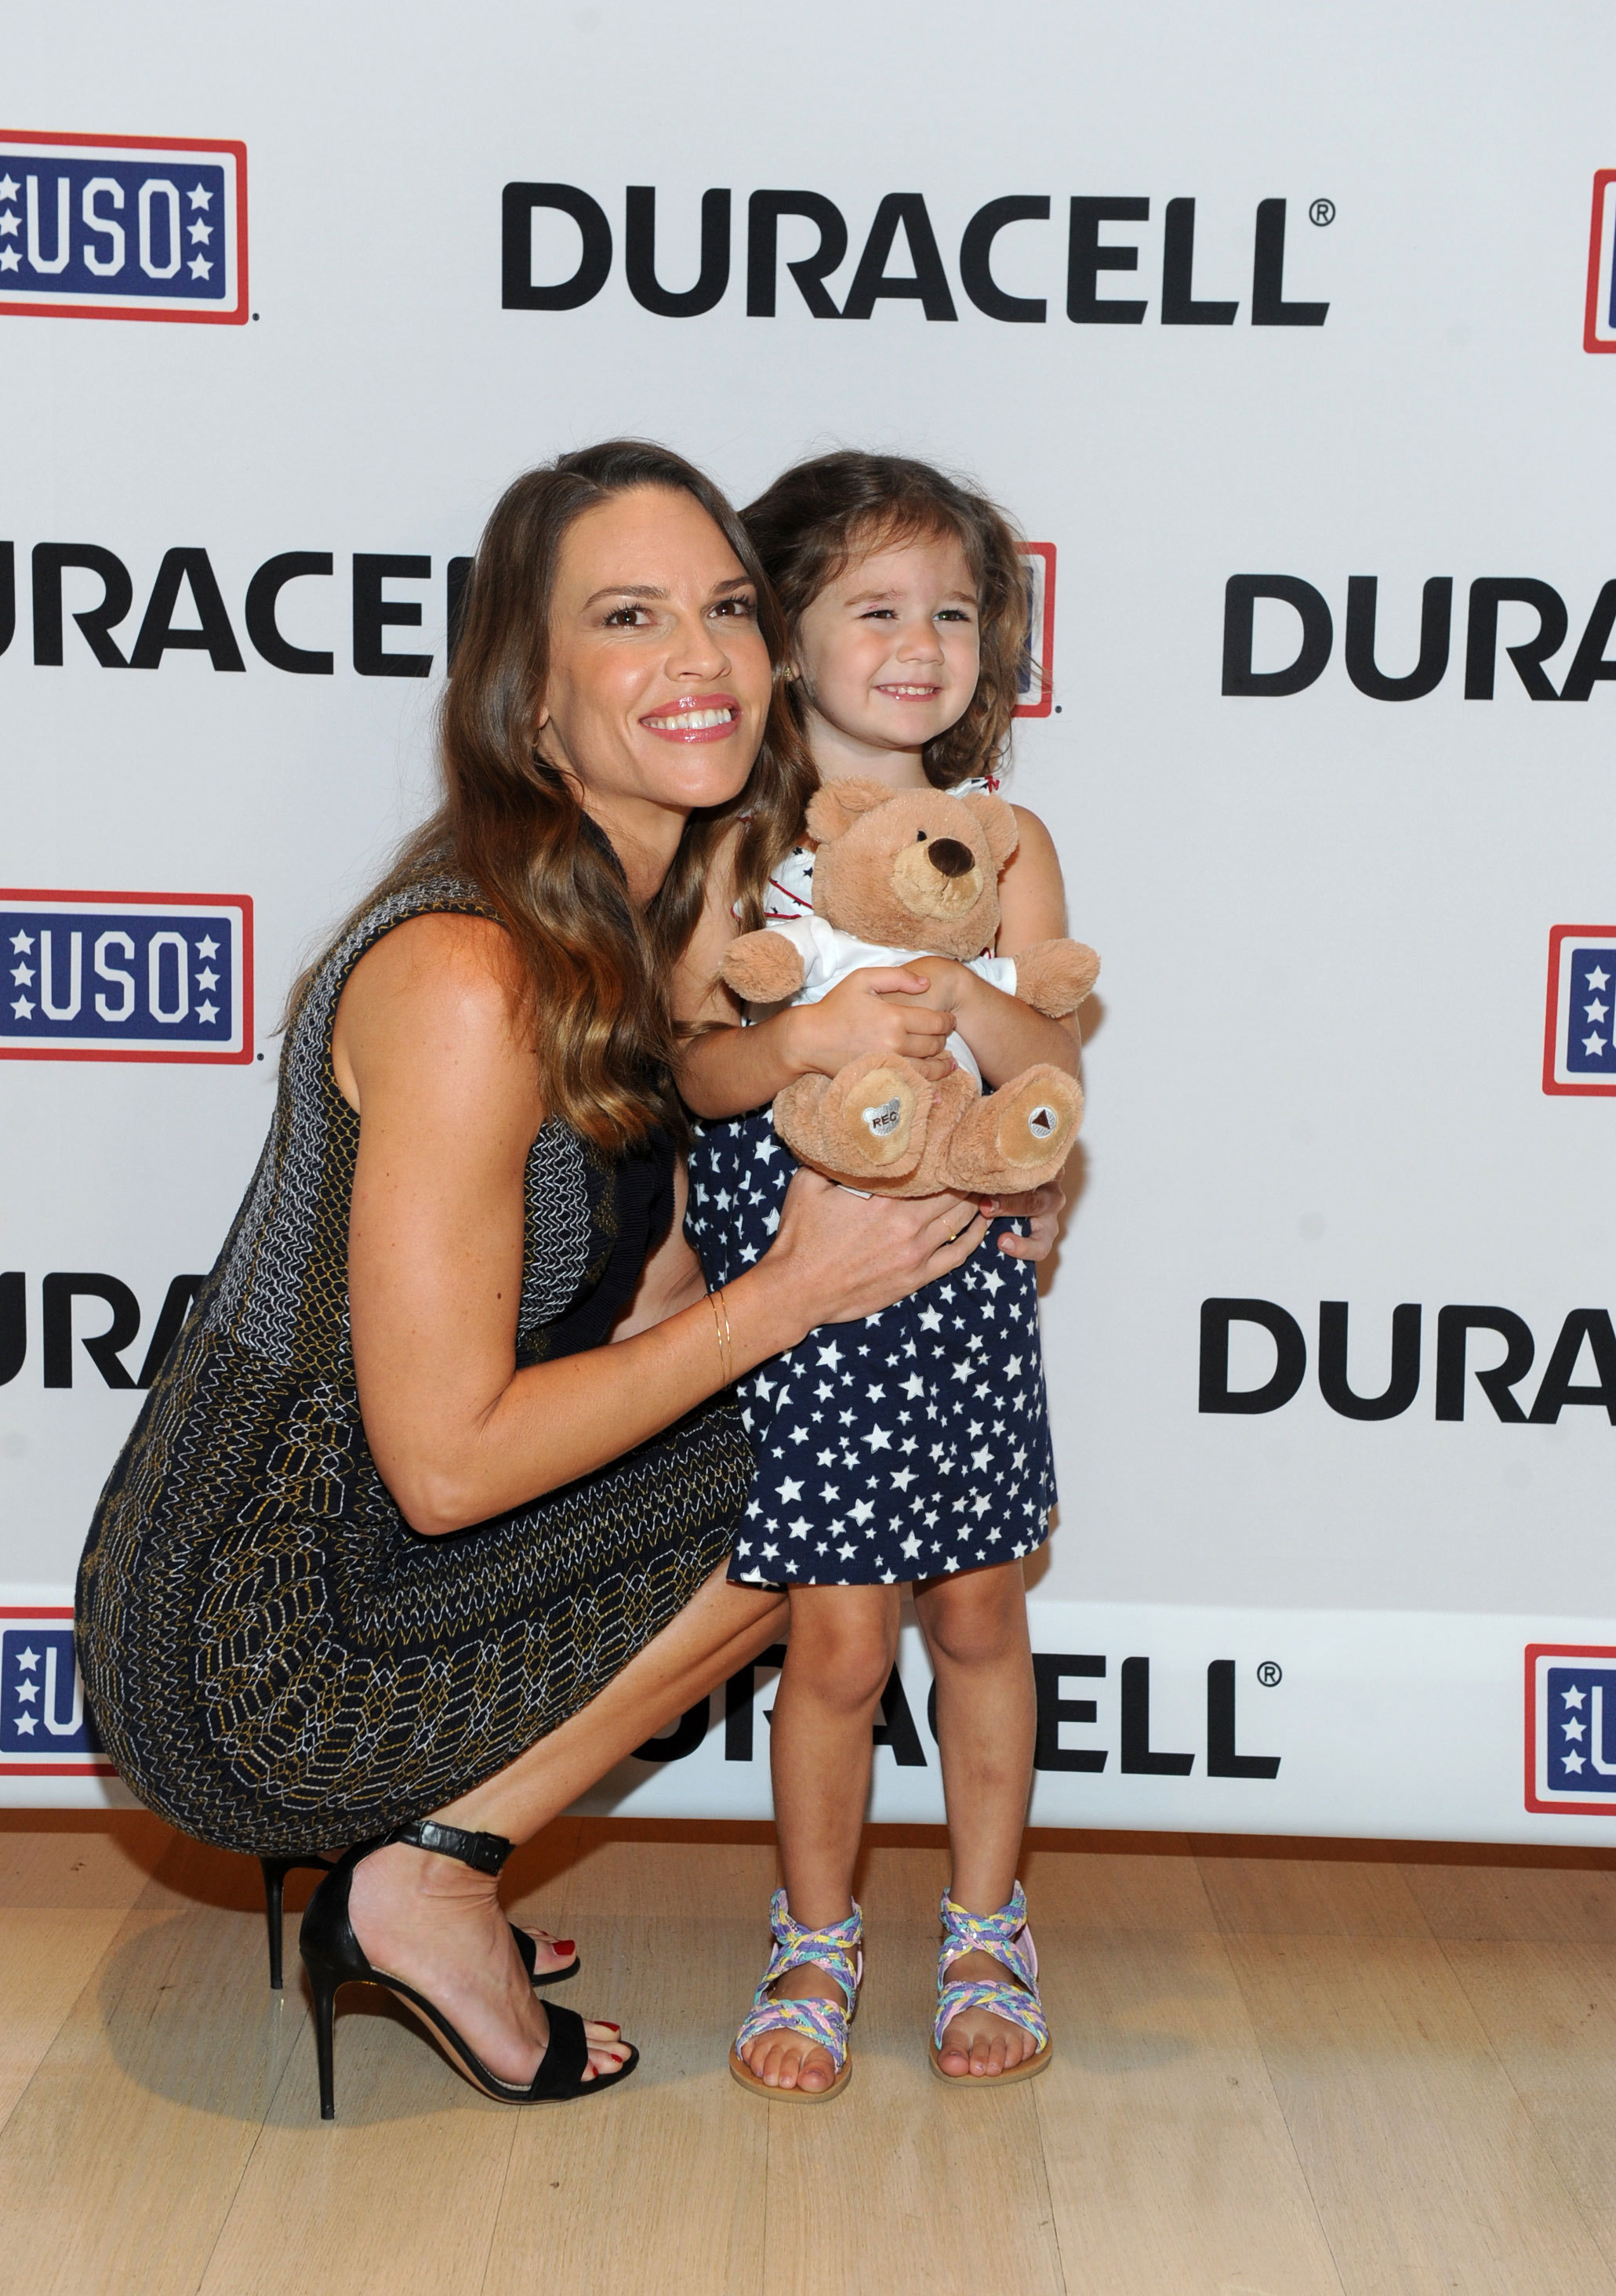 Hillary Swank Adding Multimedia Duracell And Acclaimed Actress Hilary Swank